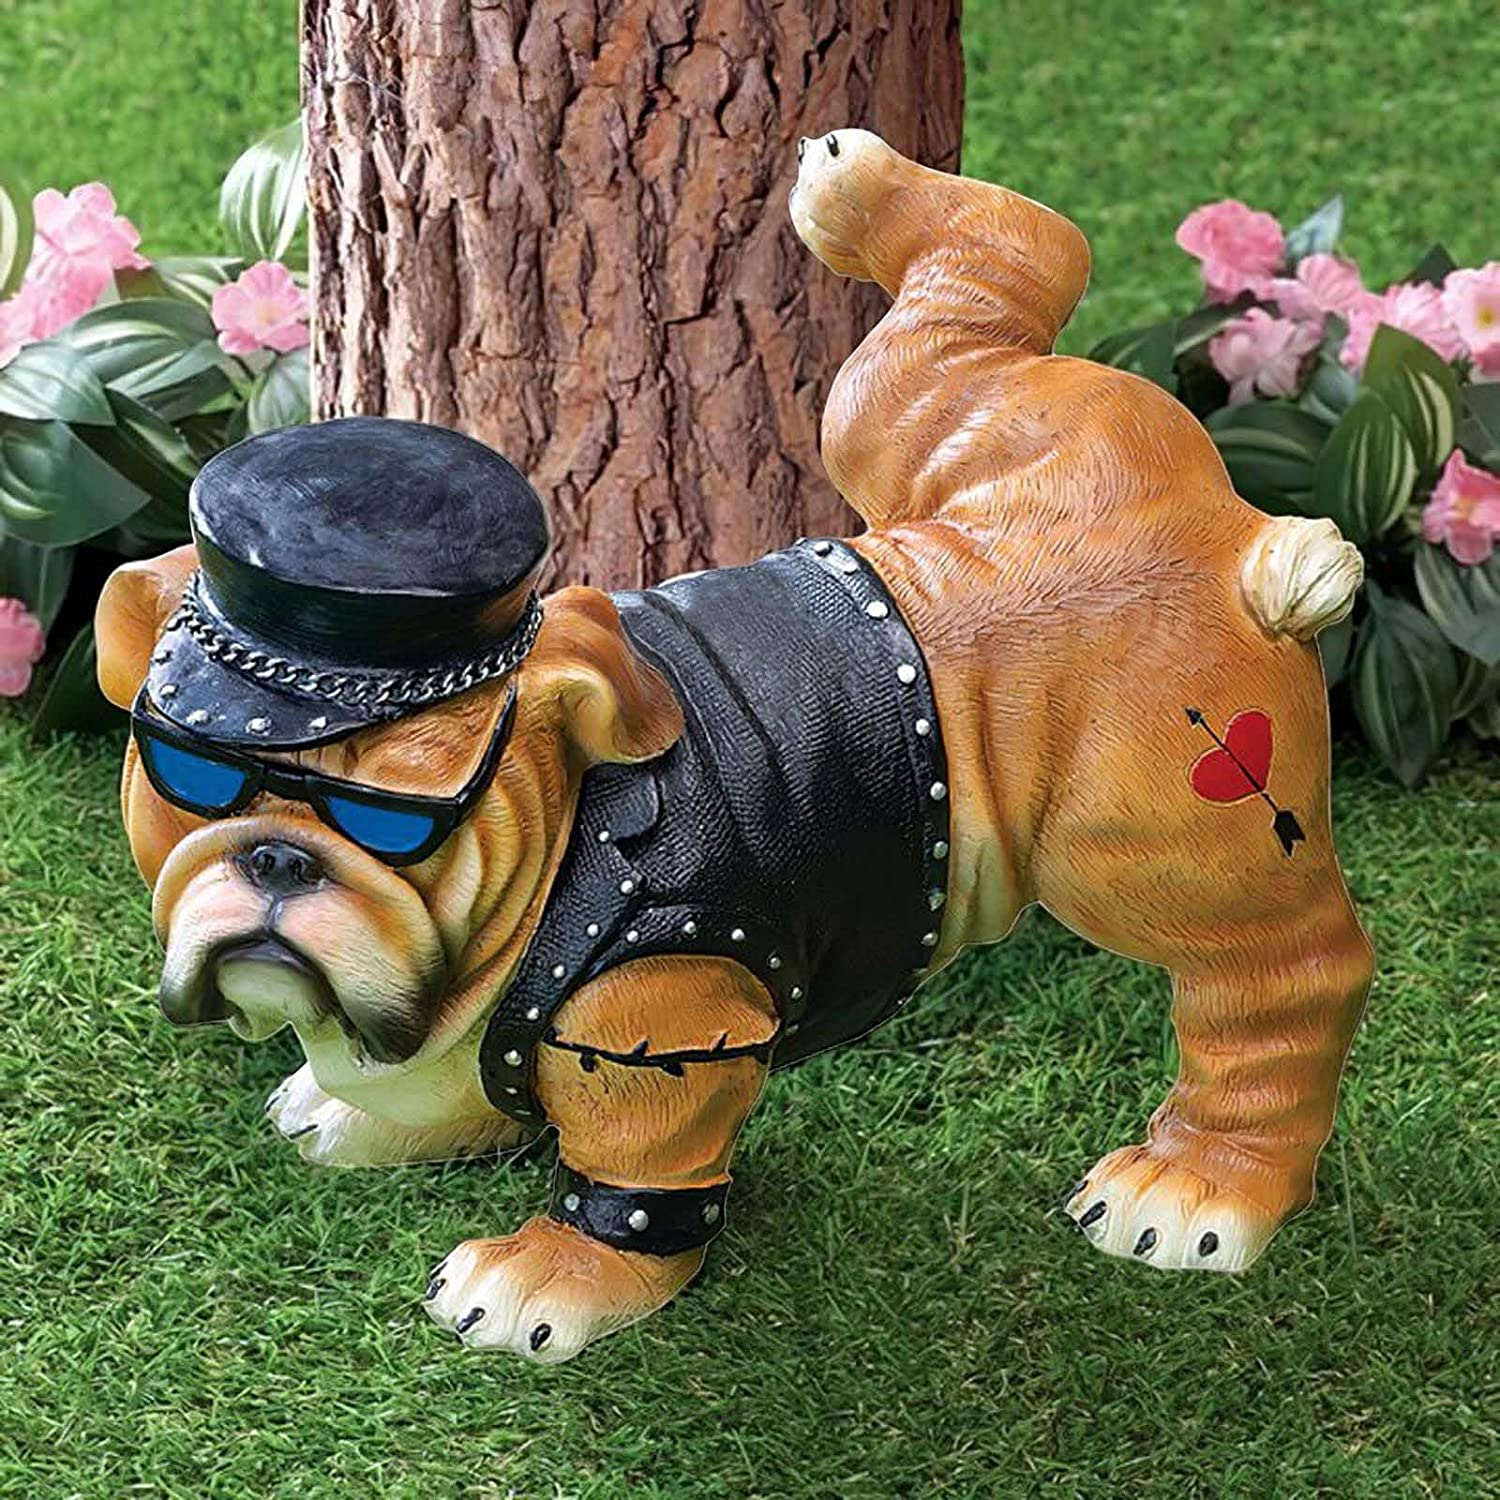 Funny Peeing Bulldog Tough Guy Creative Resin Halloween Statue All items Oakland Mall free shipping